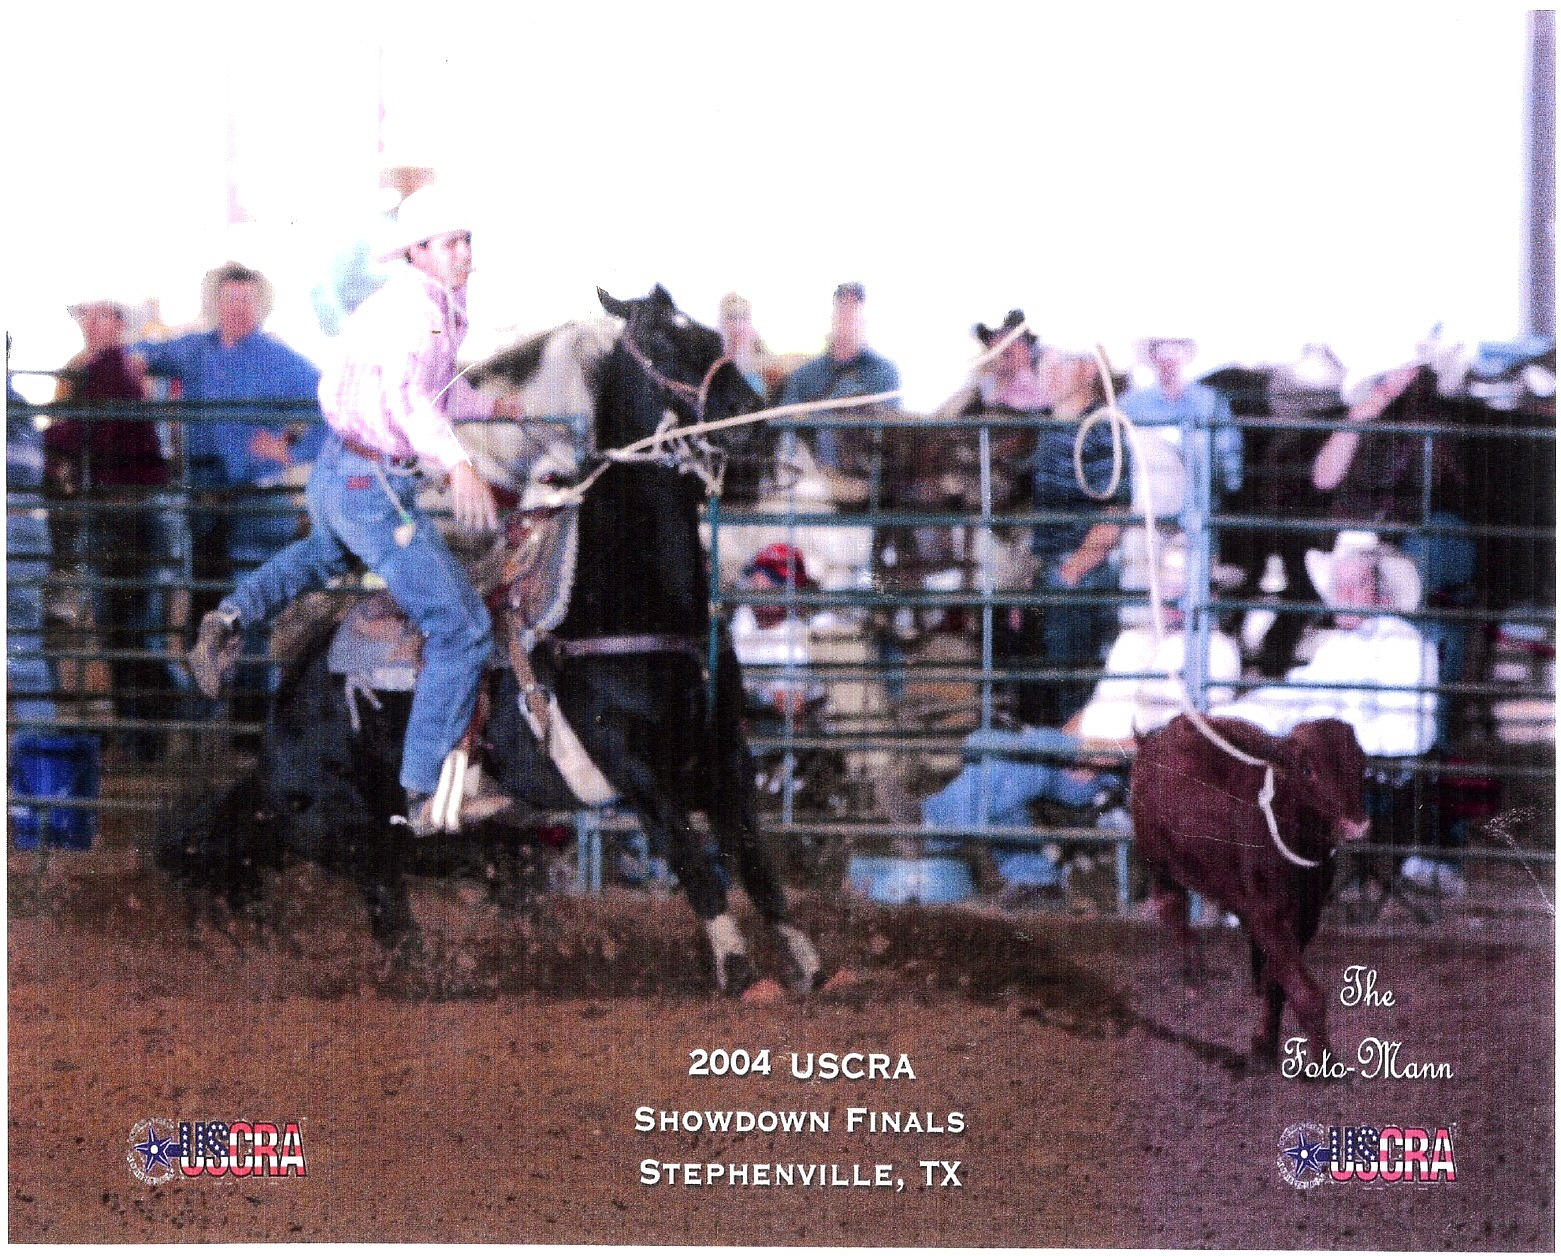 Darnell Johnson roping on a son of SKIPS FOLS.